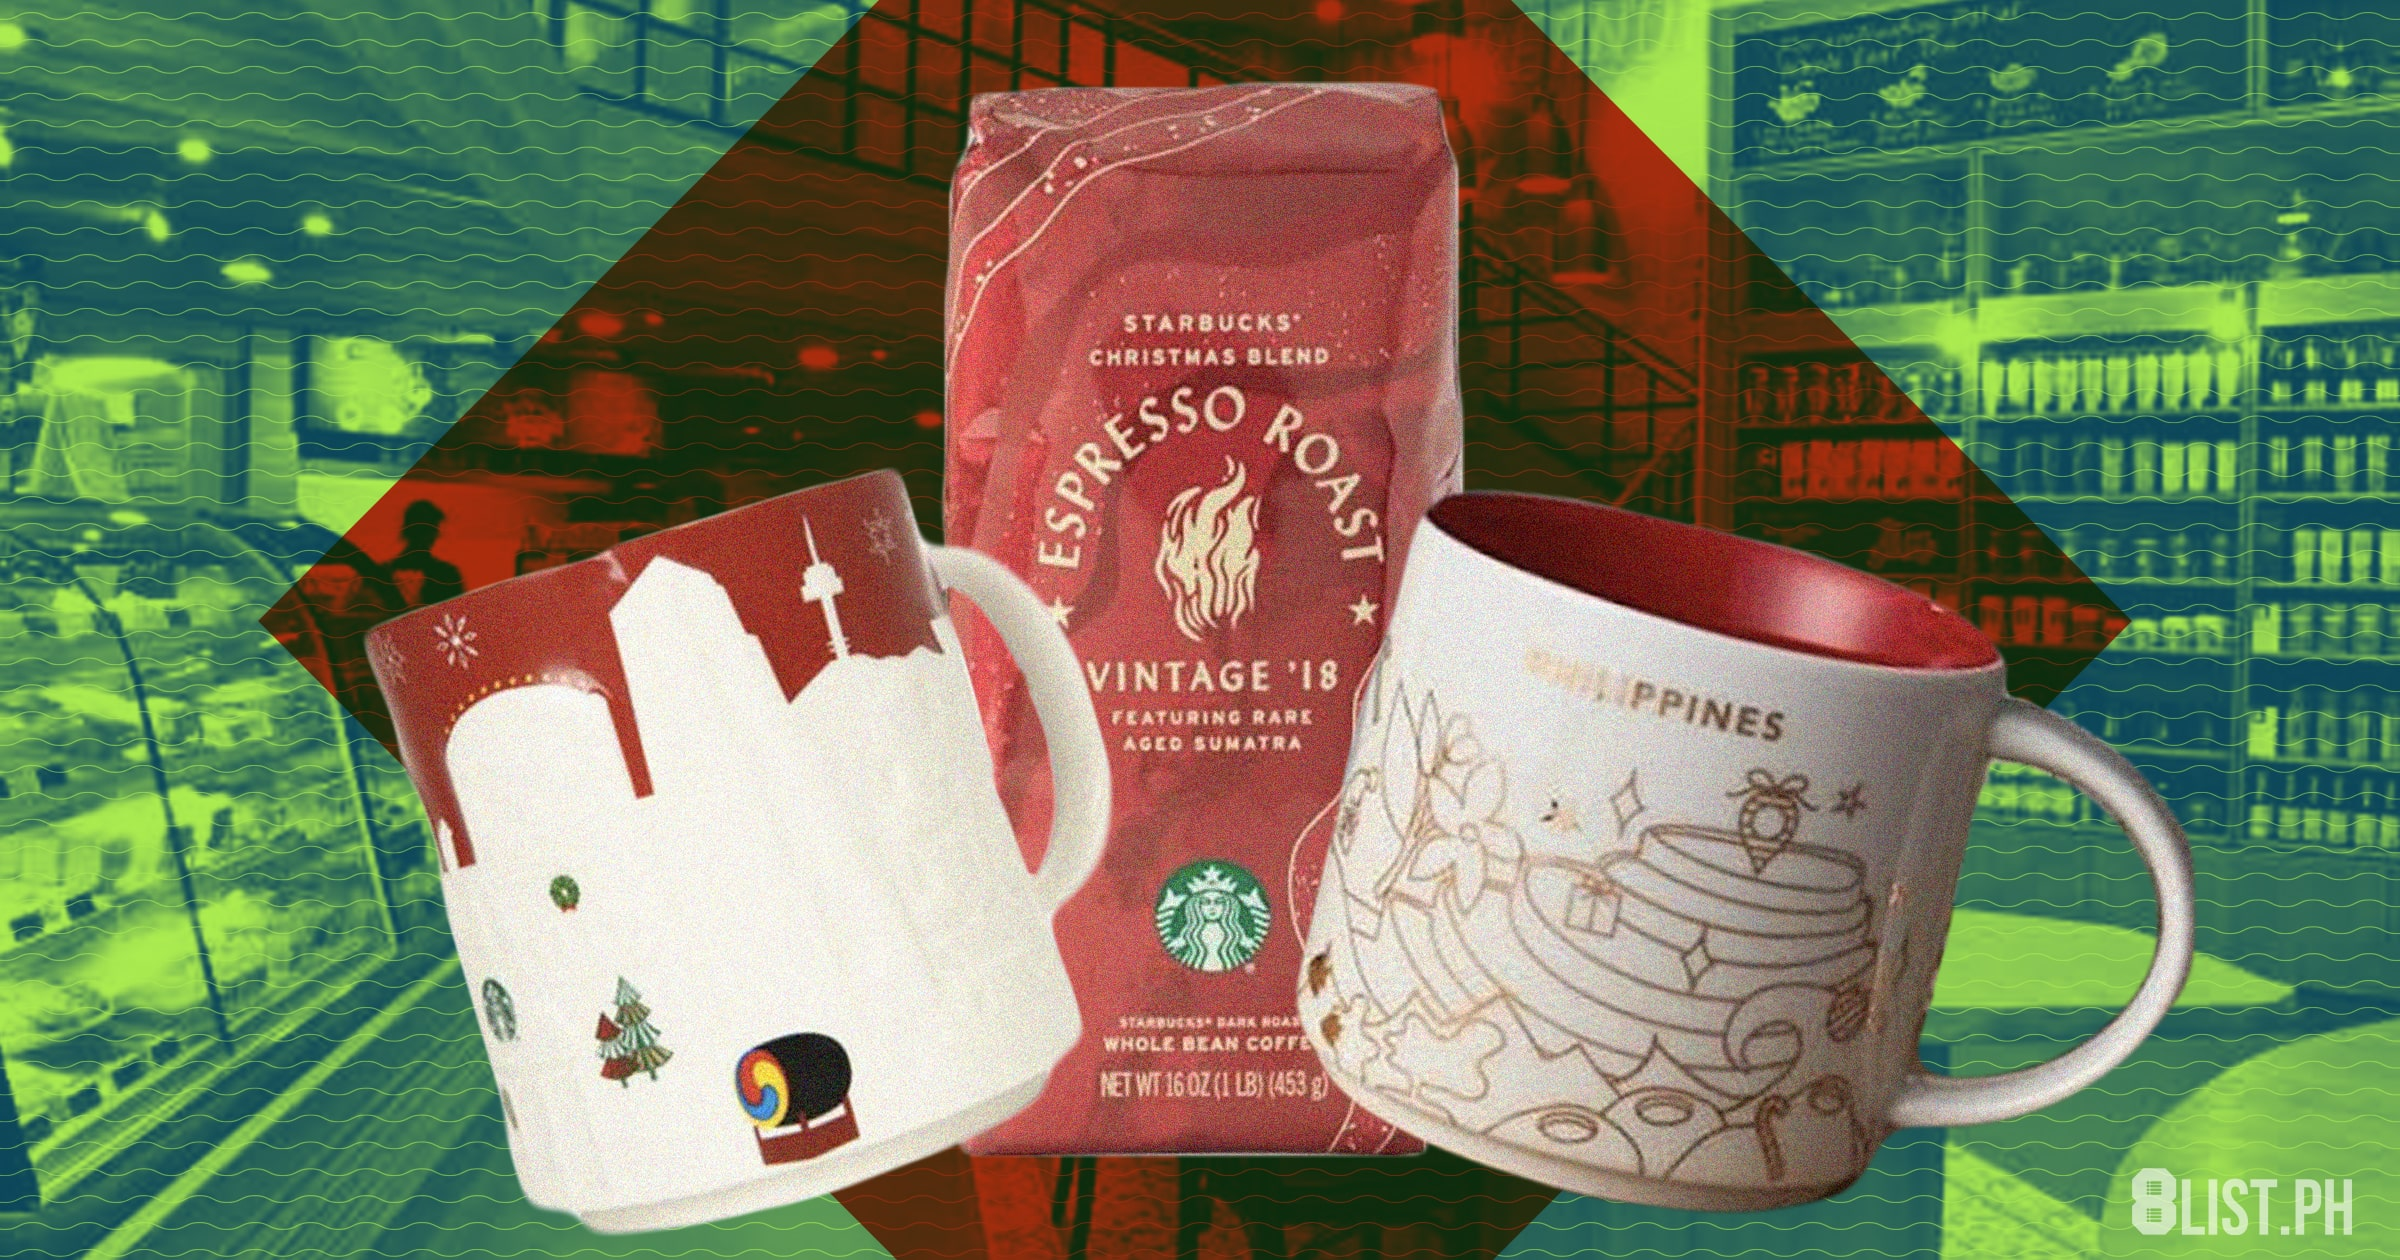 All The Starbucks Offerings This Holiday Season 8list Ph